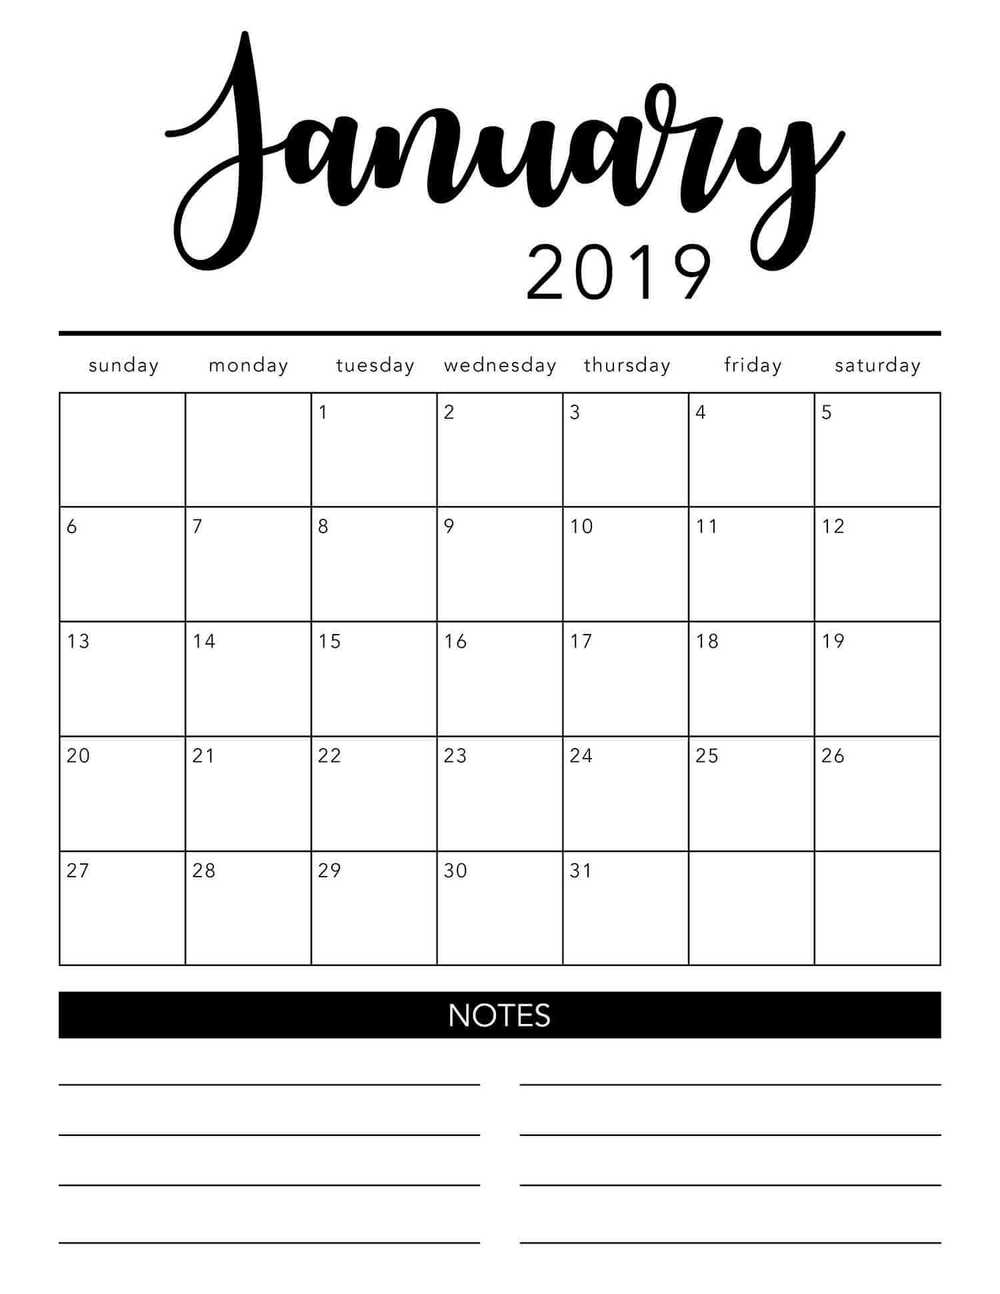 Free Printable Calendar Starting With Saturday   Ten Free with regard to June 2021 Printable Monthly Calendar With Lines